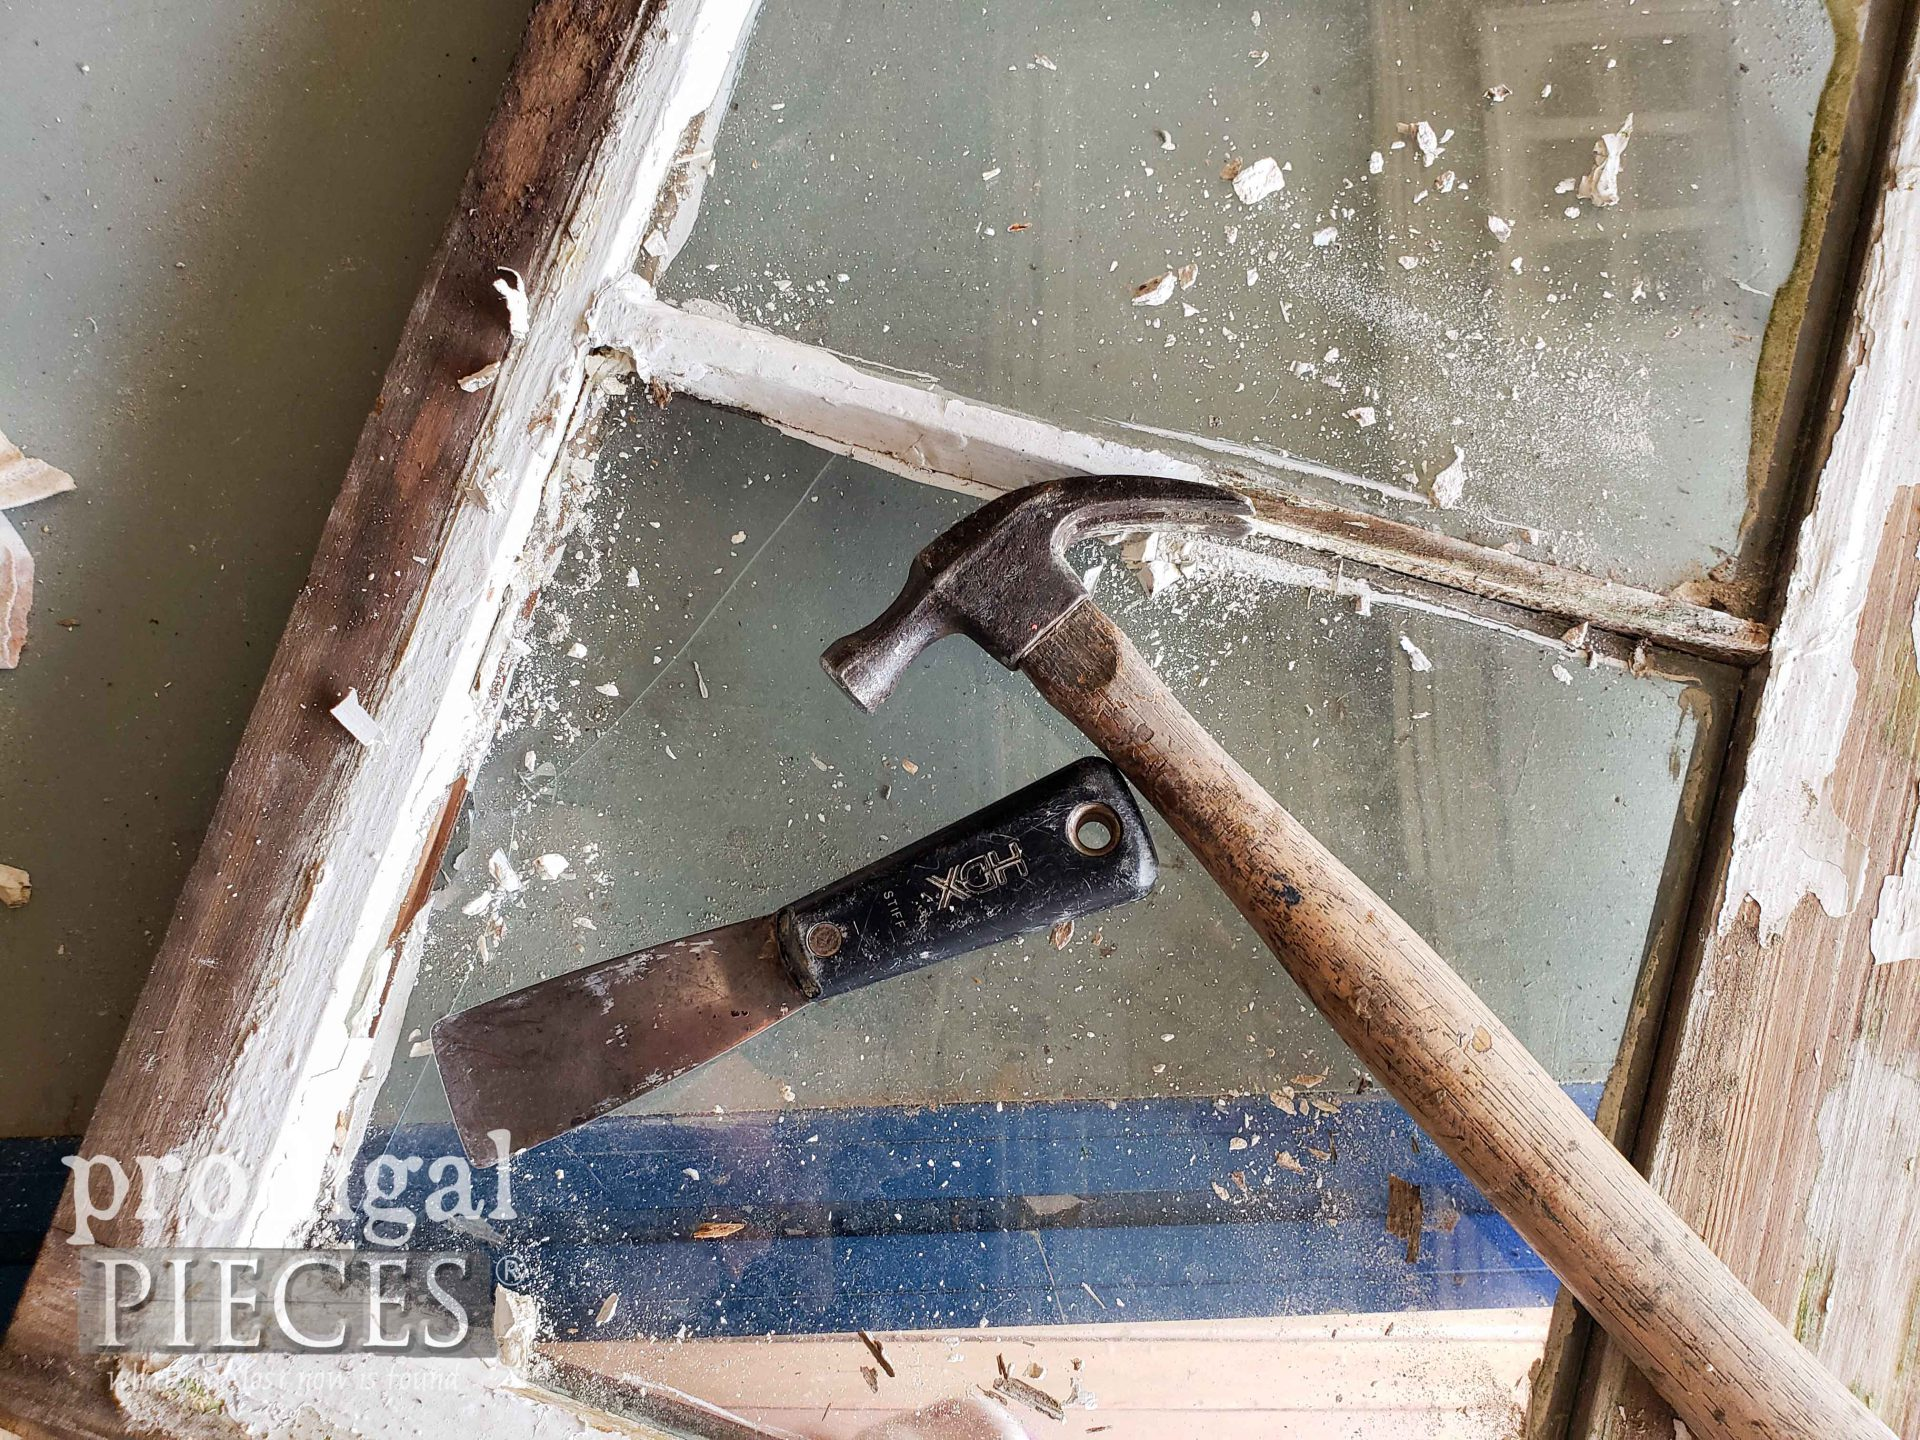 Removing Broken Glass from Reclaimed Windows | prodigalpieces.com